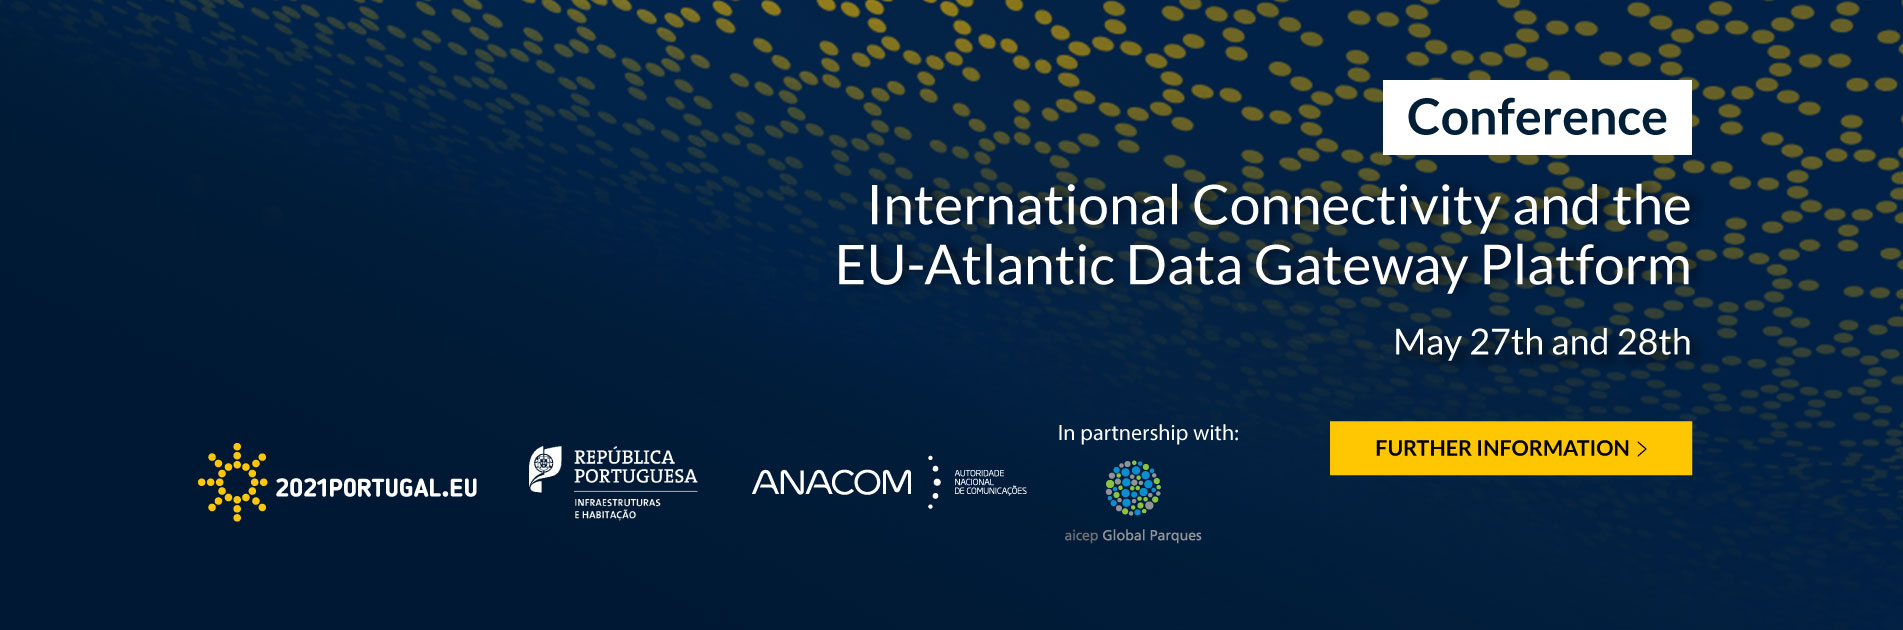 Conference on International Connectivity and the EU-Atlantic Data Gateway Platform